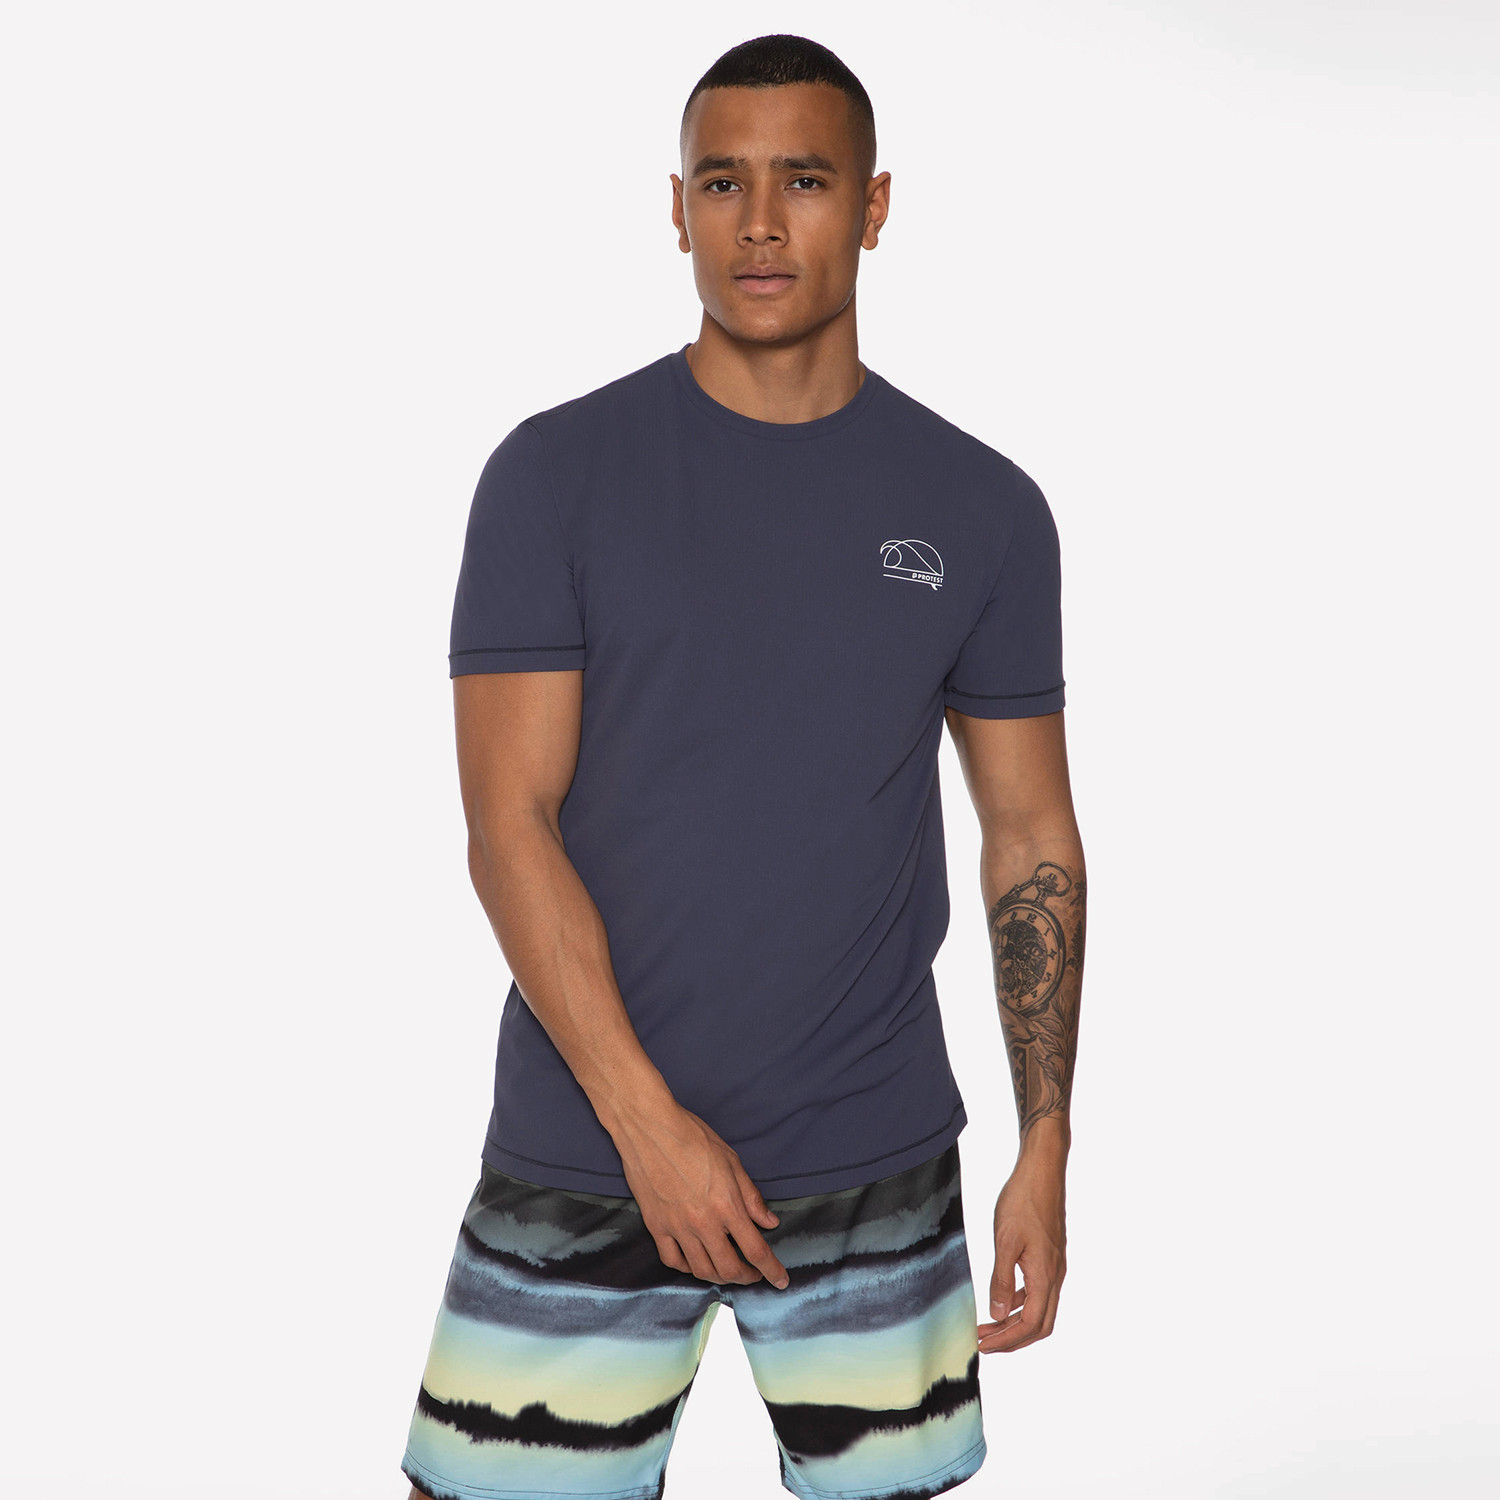 Protest Protest Rapter 21 Surf Ανδρικό T-Shirt (9000082522_1962)